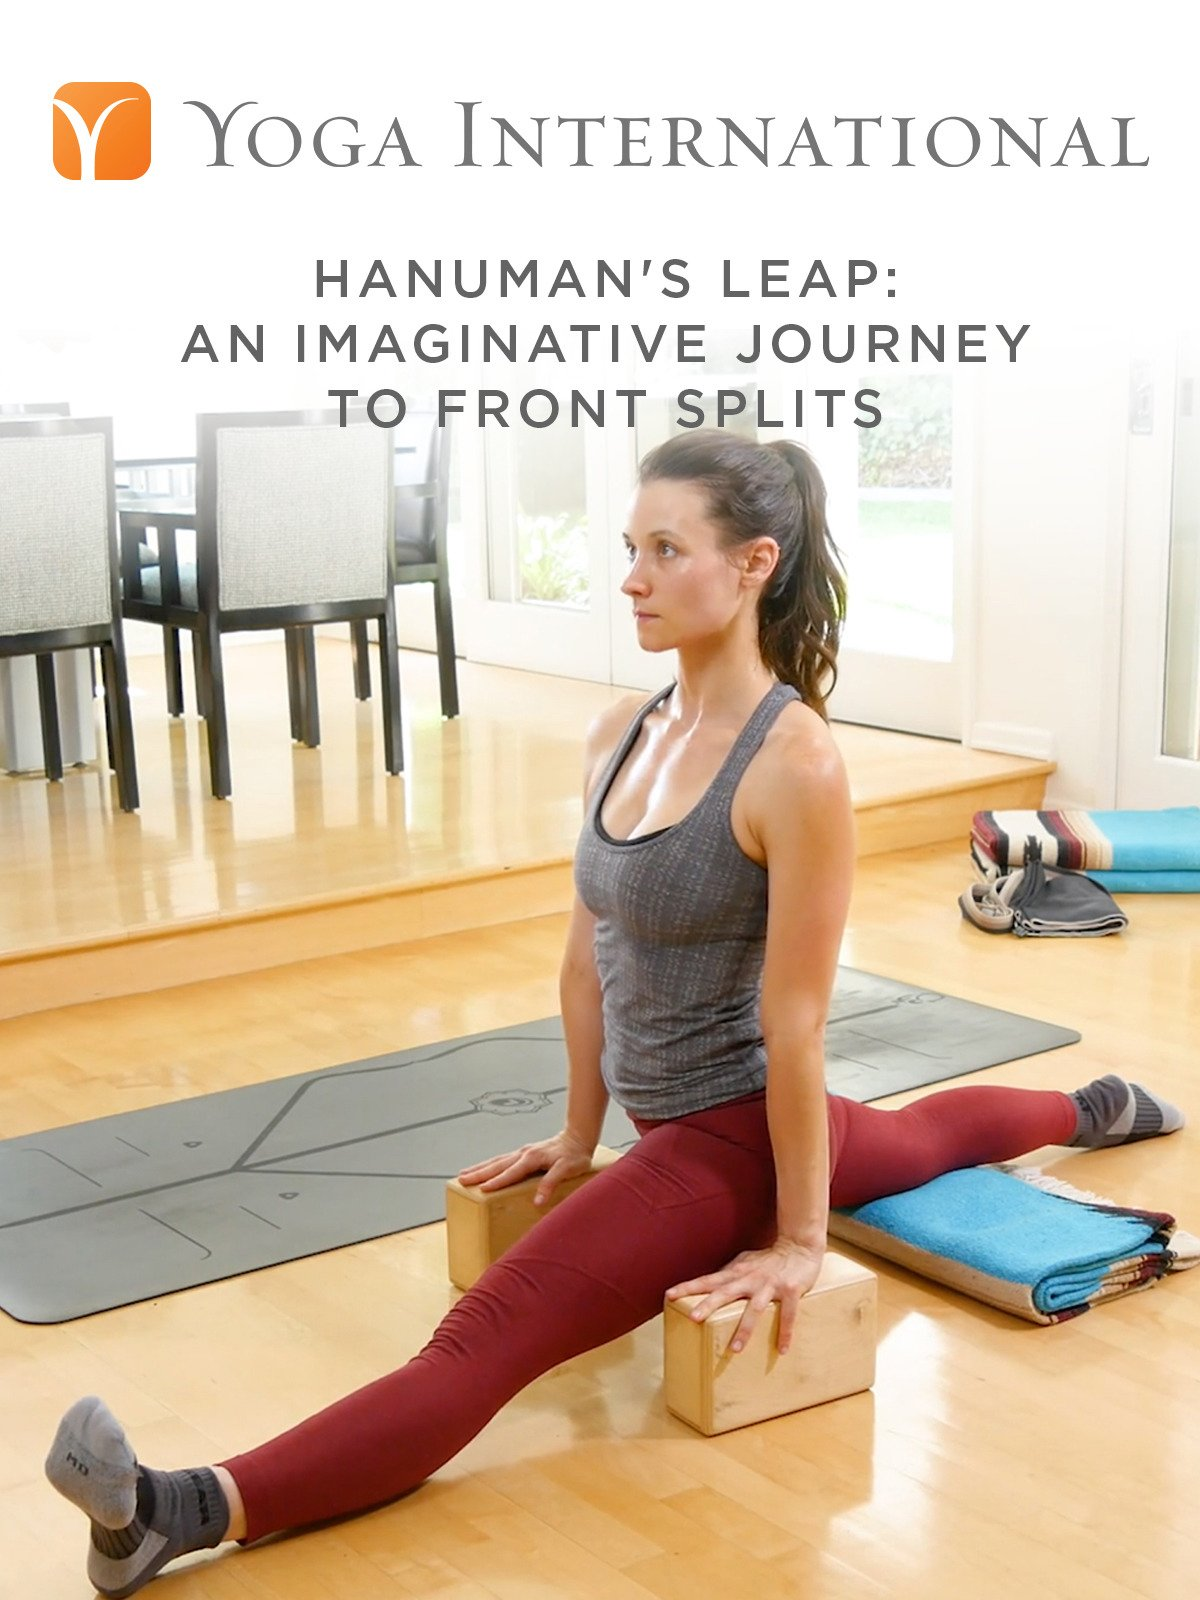 Hanuman's Leap: An Imaginative Journey to Front Splits